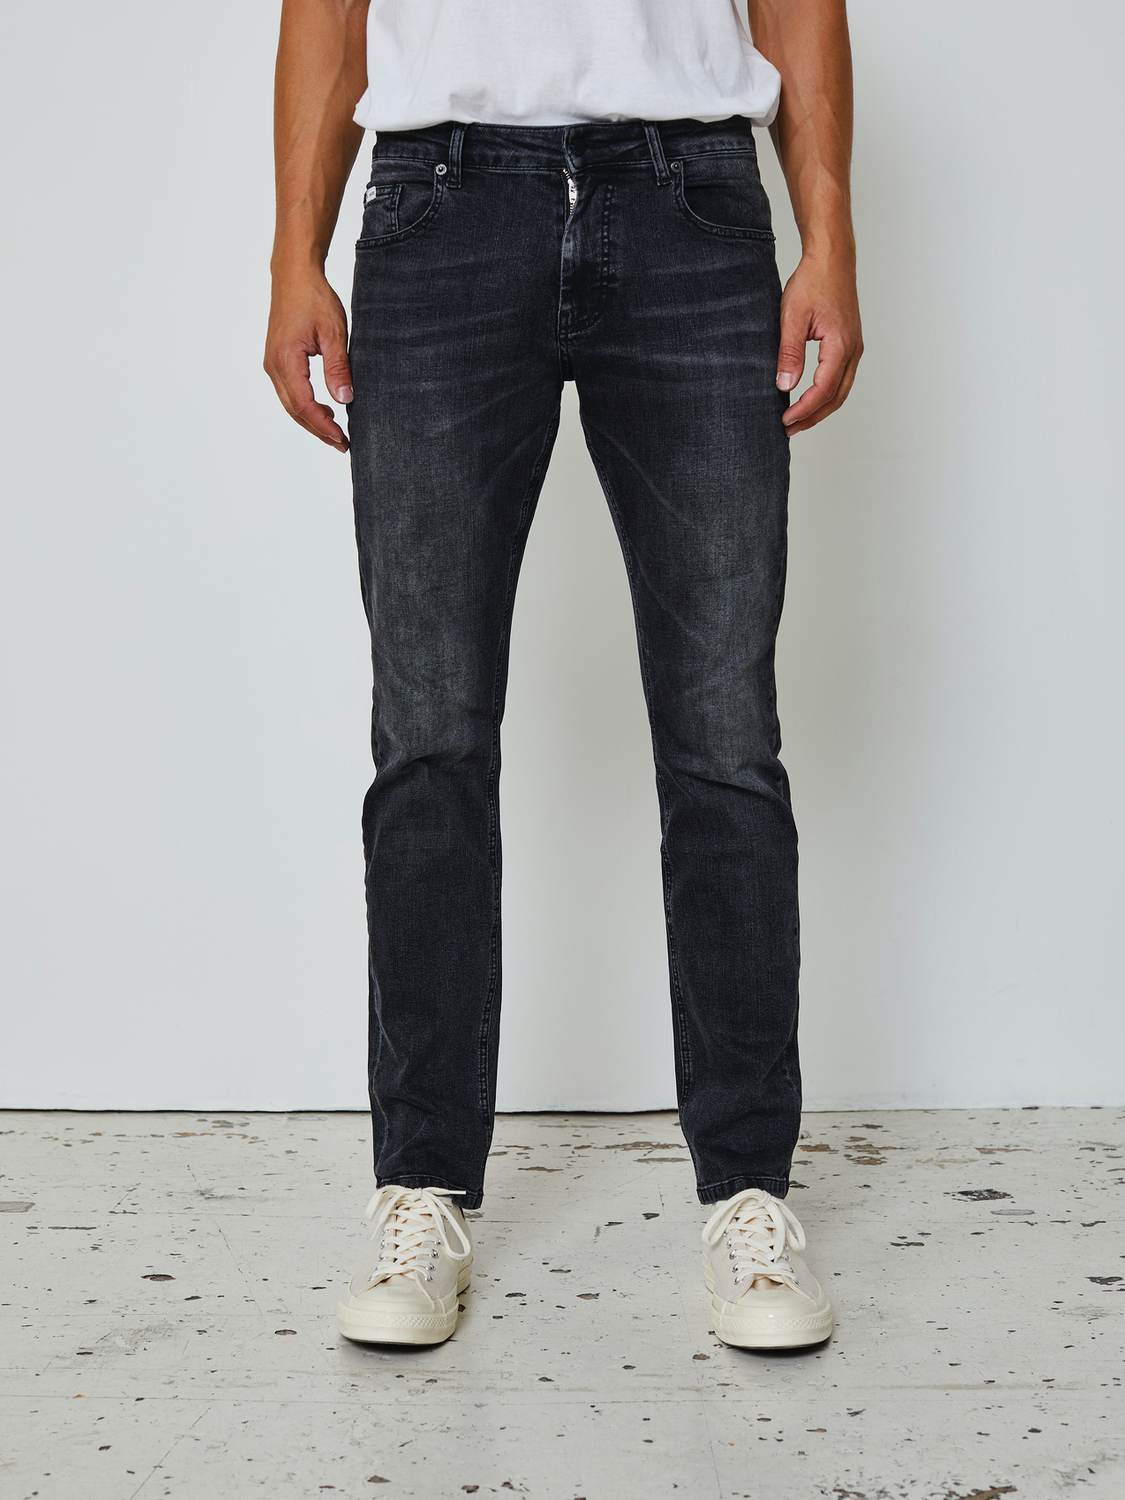 Just junkies Jeans - JEFF LOOSE GREY JJ2001 | GATE 36 Hobro